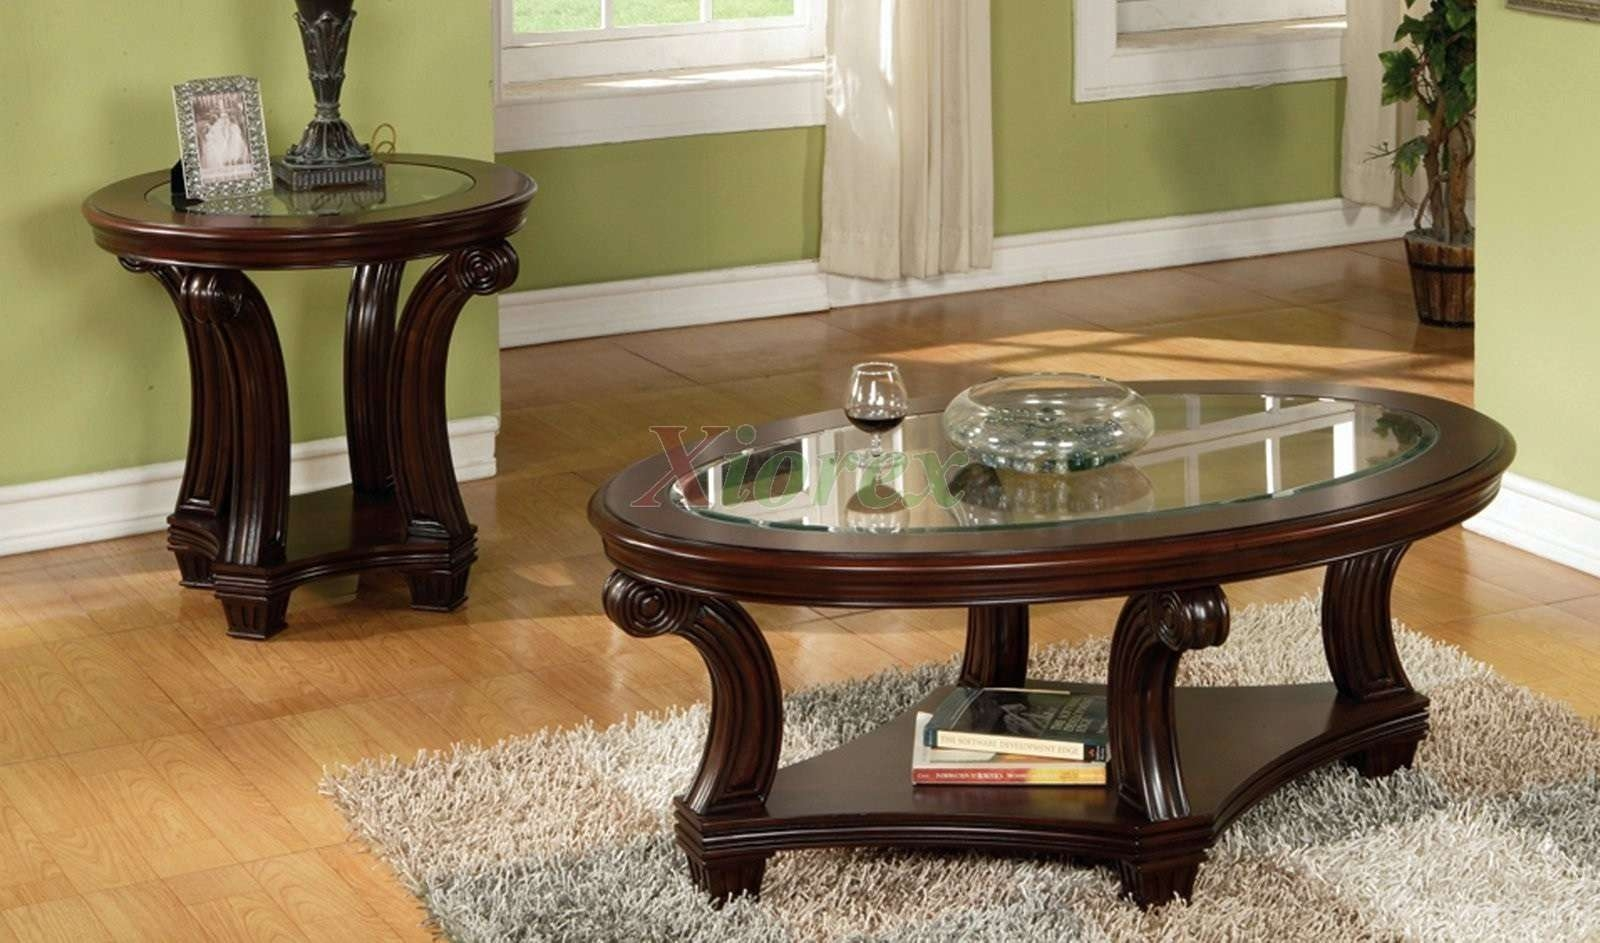 Dark Wood Coffee Table With Glass Top – Solid Hardwood Table Legs Pertaining To Popular Dark Wood Coffee Tables With Glass Top (View 12 of 23)